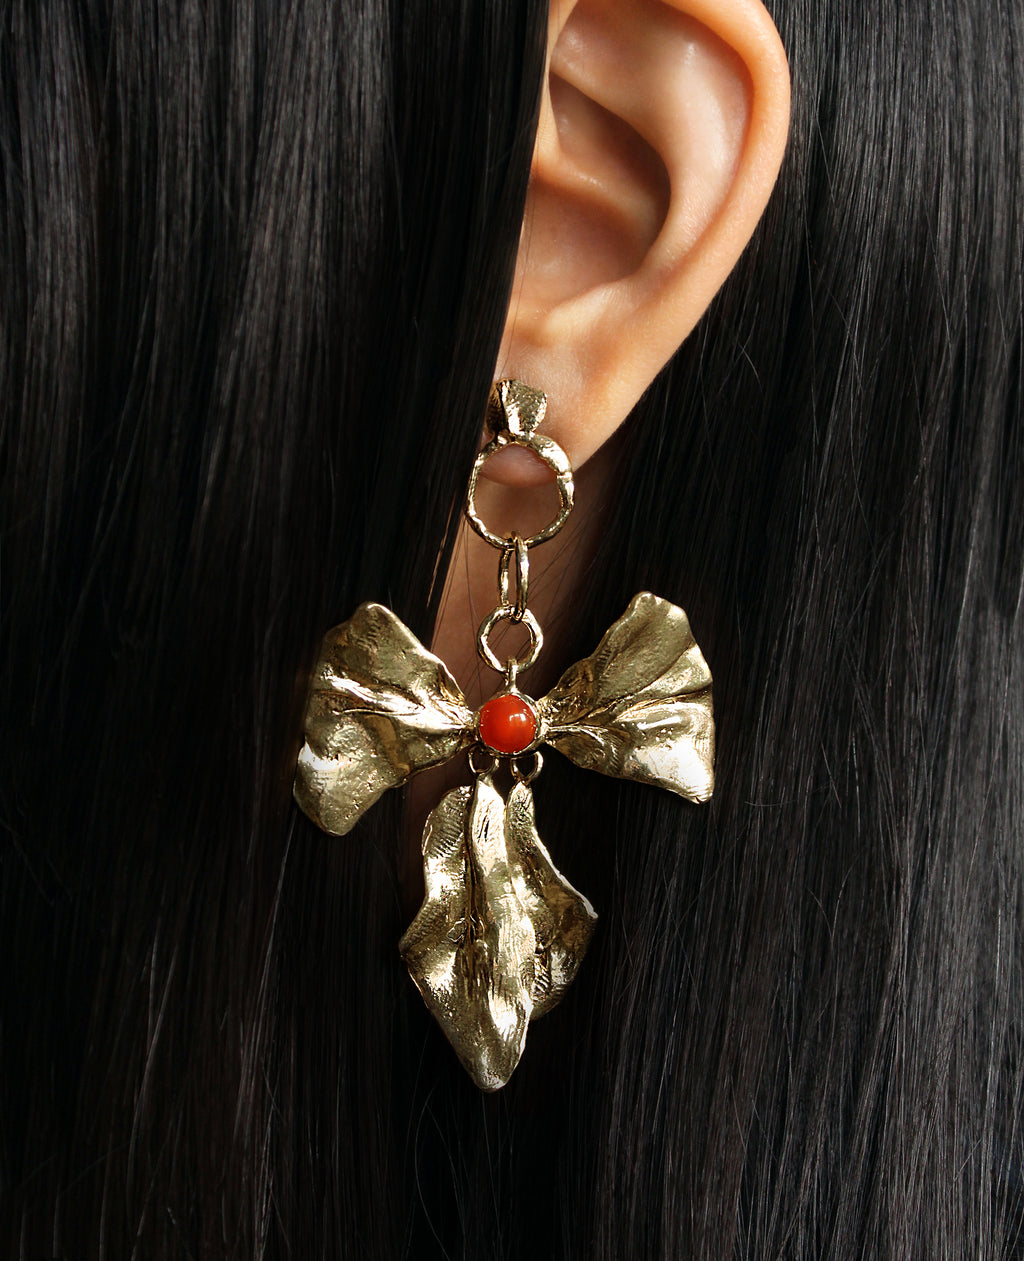 REIGN BOW // earrings with carnelian - ORA-C jewelry - handmade jewelry by Montreal based independent designer Caroline Pham